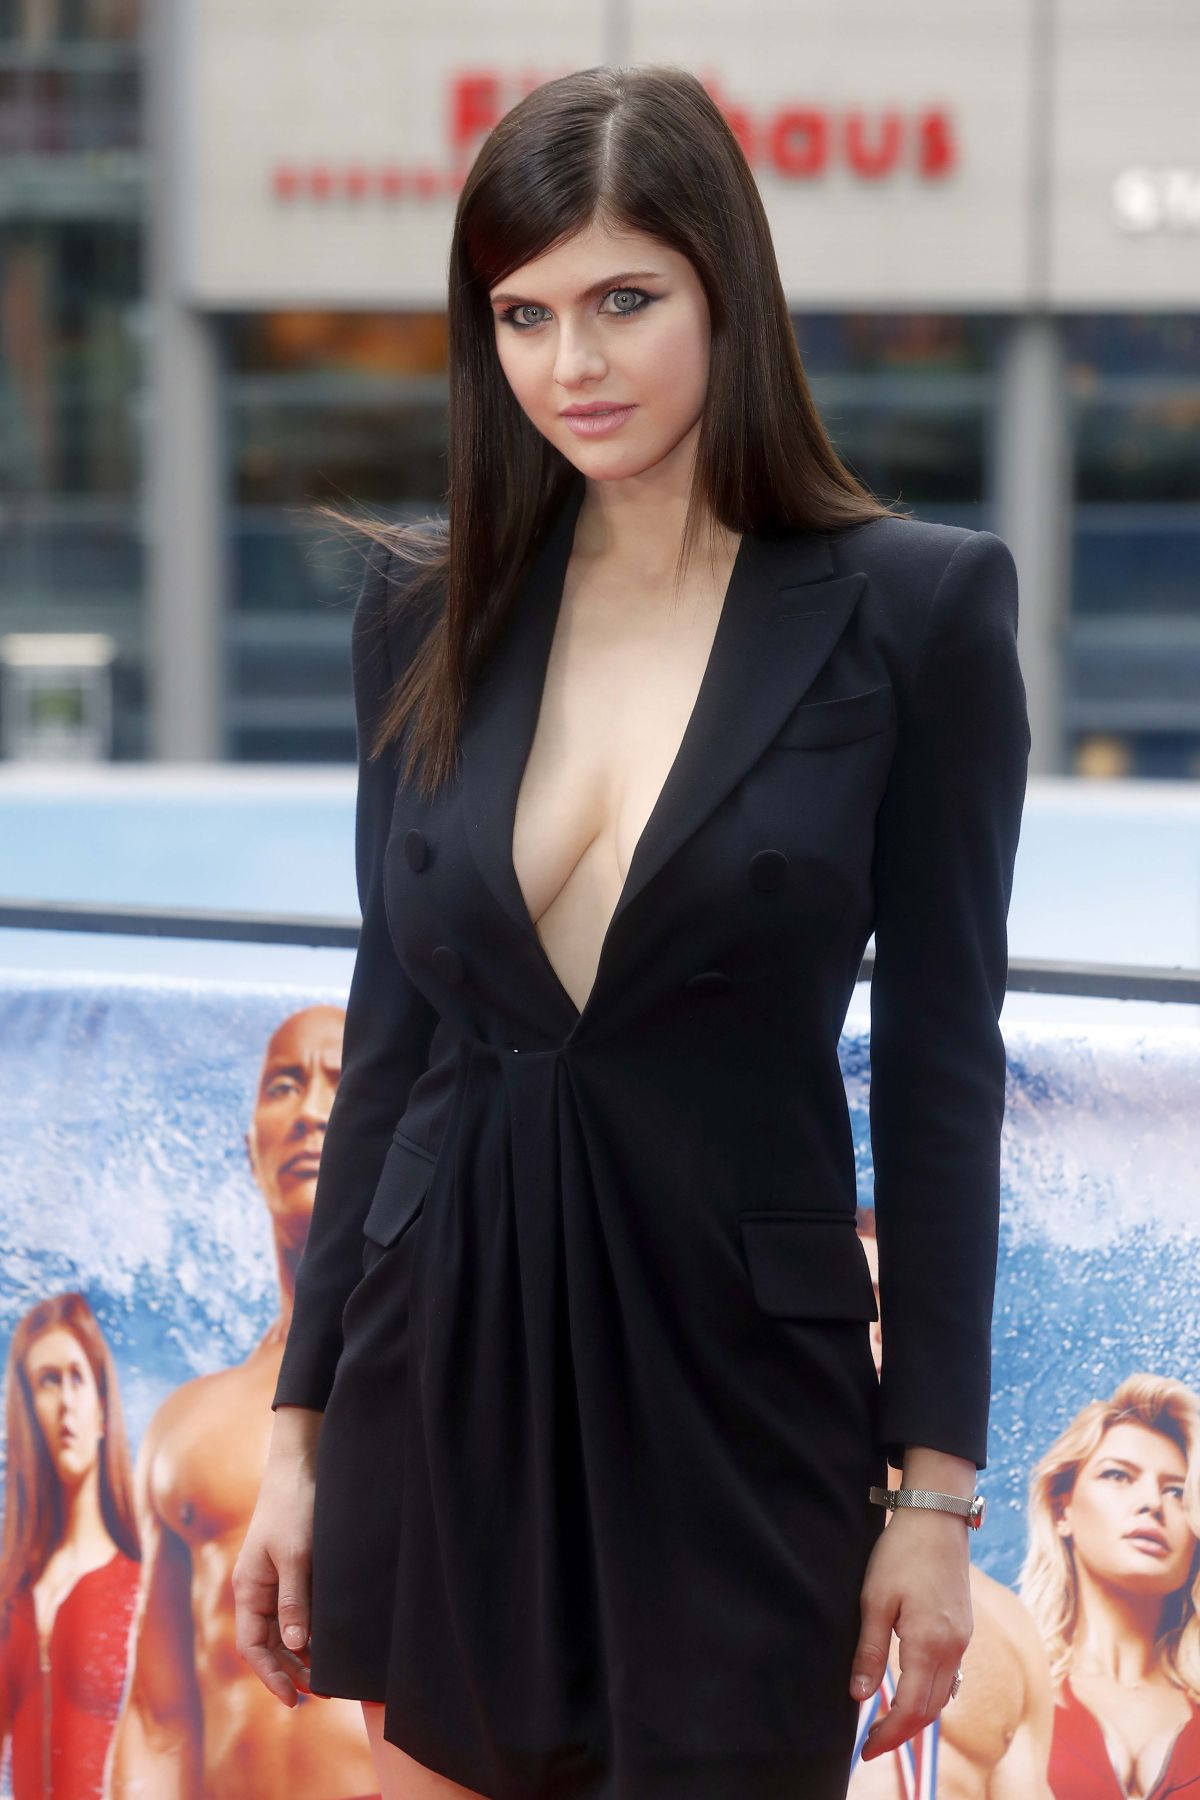 ALEXANDRA DADDARIO at Baywatch Photocall in Berlin 05/30/2017